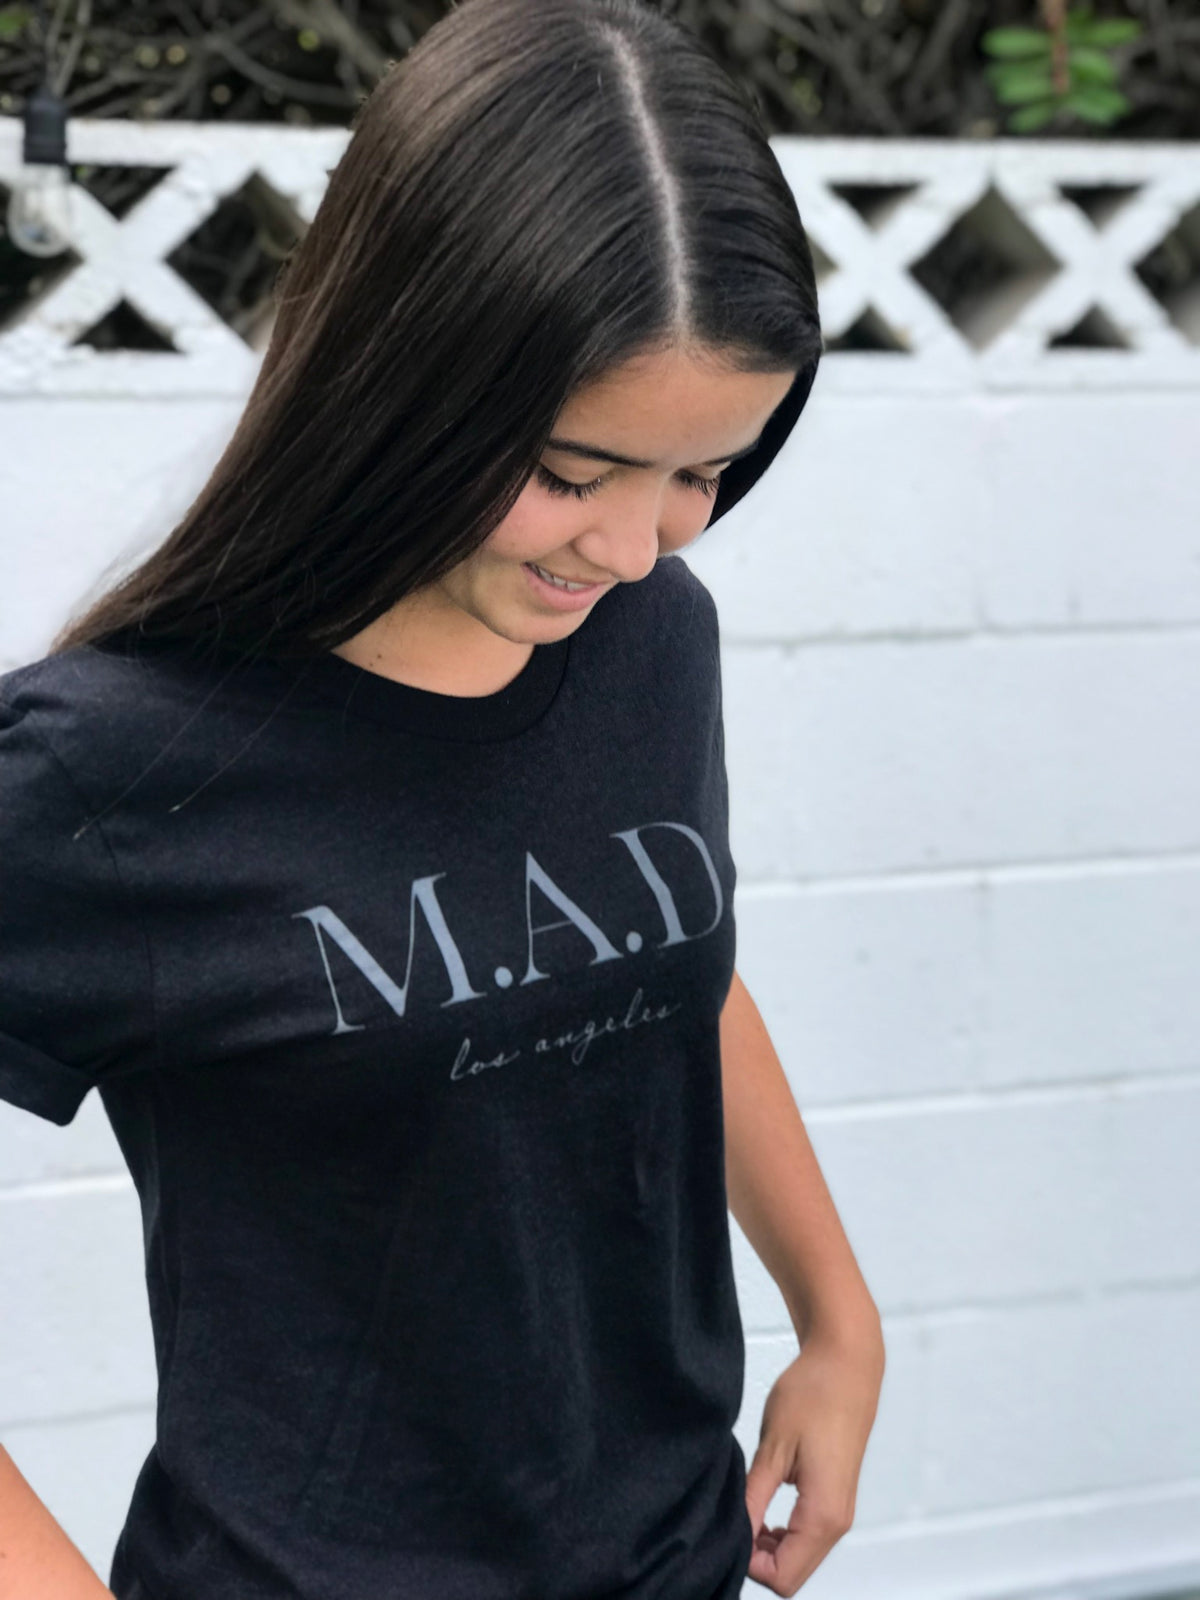 M.A.D. Los Angeles Shirt